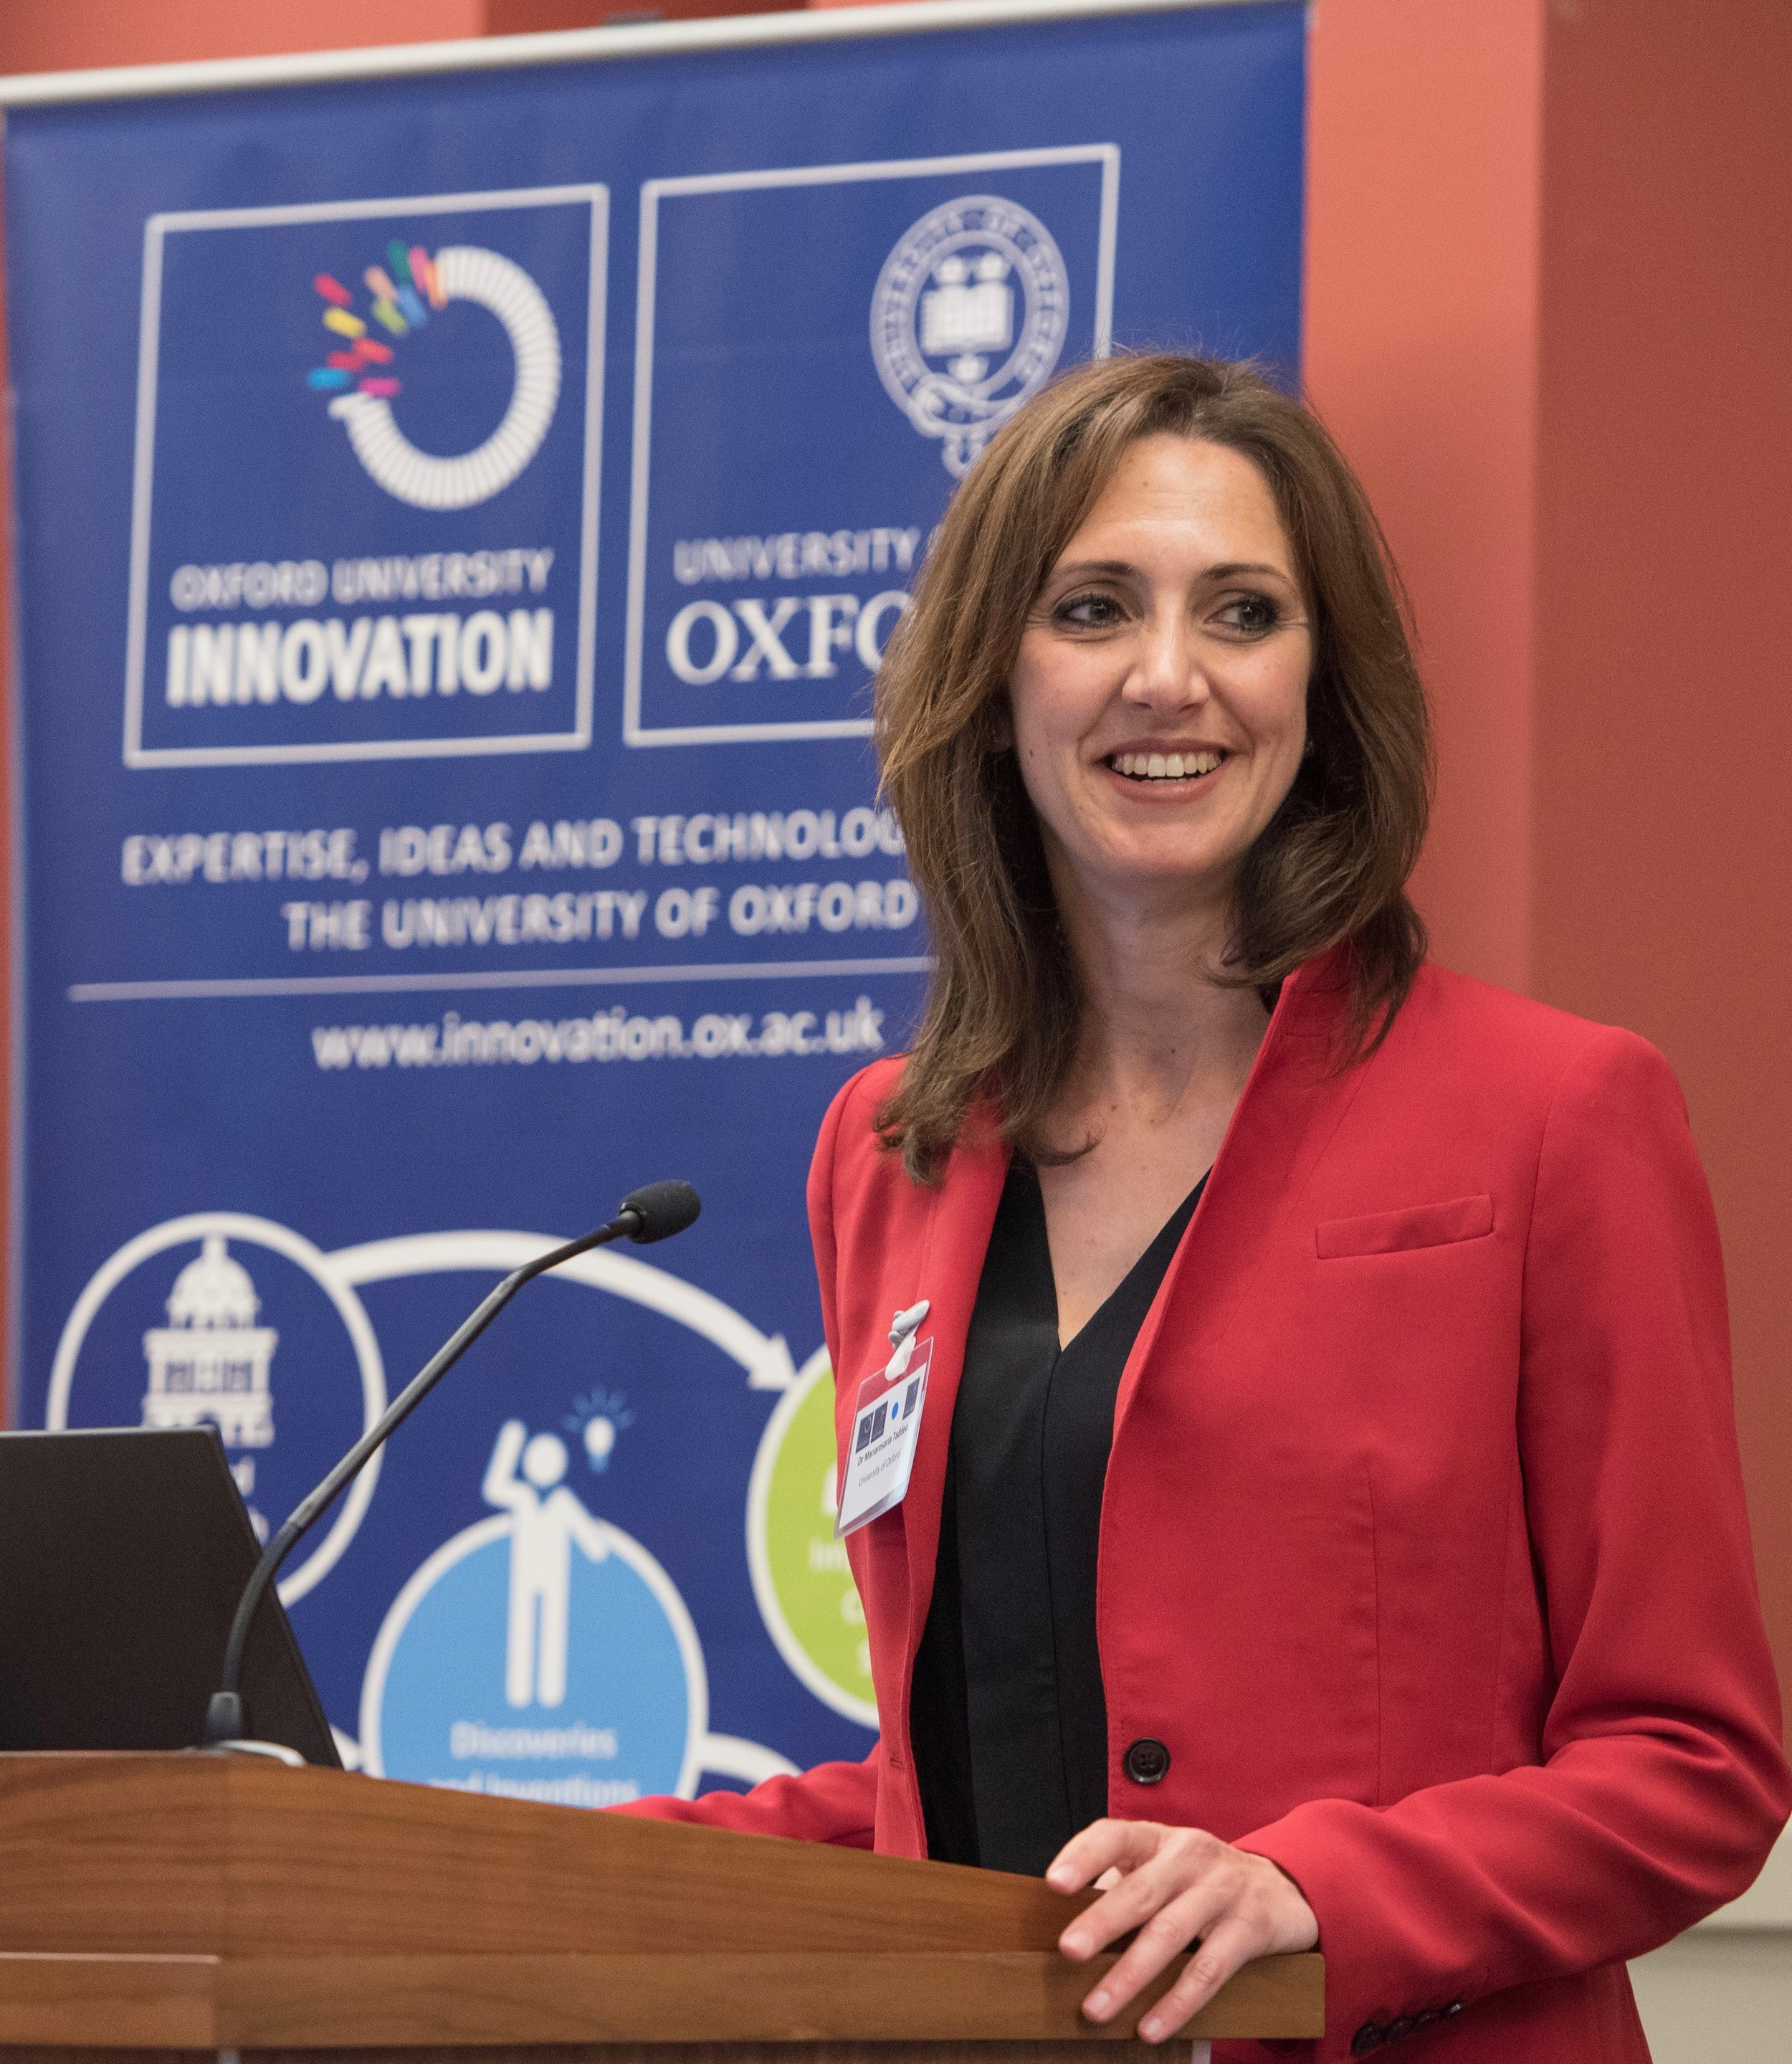 Dr. Mariarosaria Taddeo, Researcher Fellow at the Oxford Internet Institute, University of Oxford, and Deputy Director of the Digital Ethics Lab